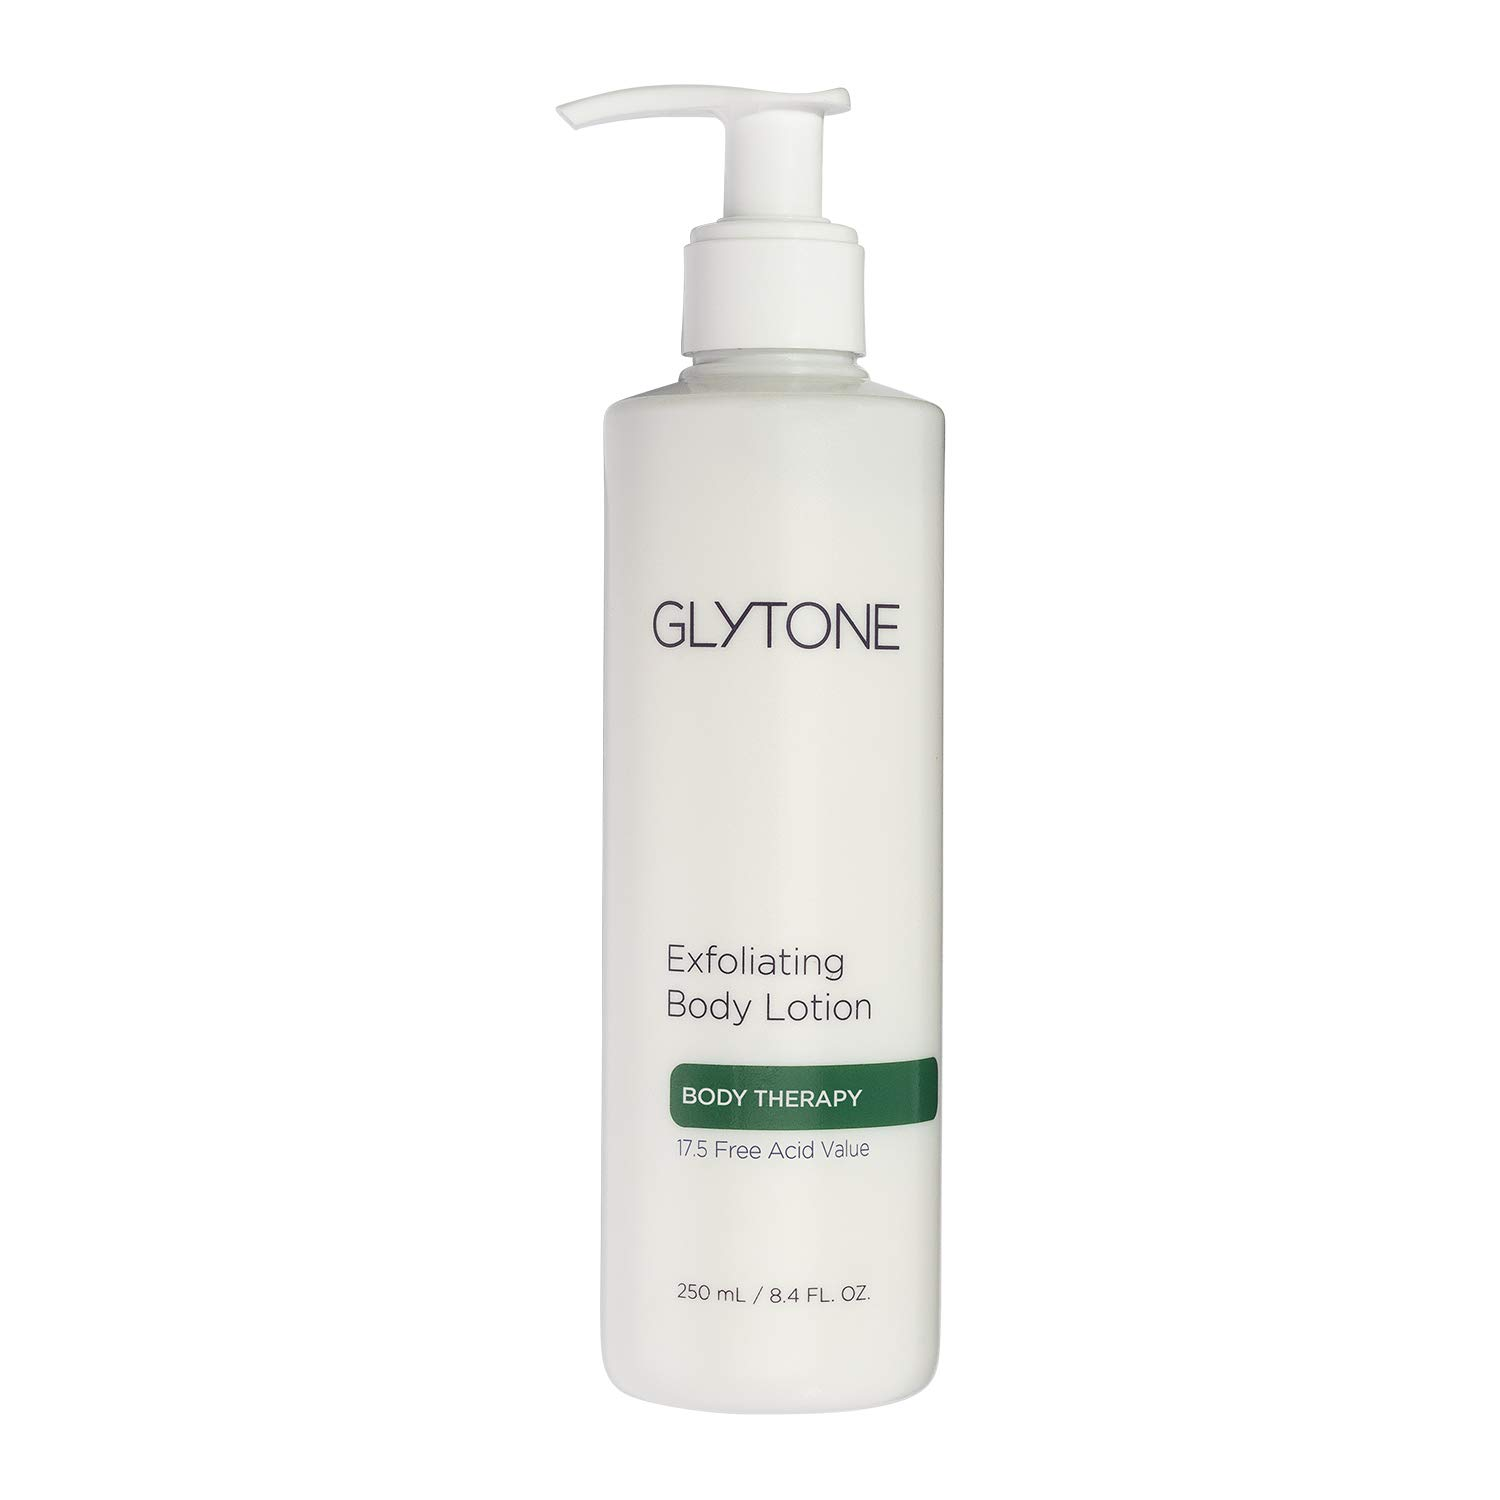 Glytone Exfoliating Body Lotion With 17.5 Free Acid Value Glycolic Acid, Keratosis Pilaris, KP, Smooths Rough & Bumpy Skin, Chicken Skin, Fragrance-Free, 8.4 oz.